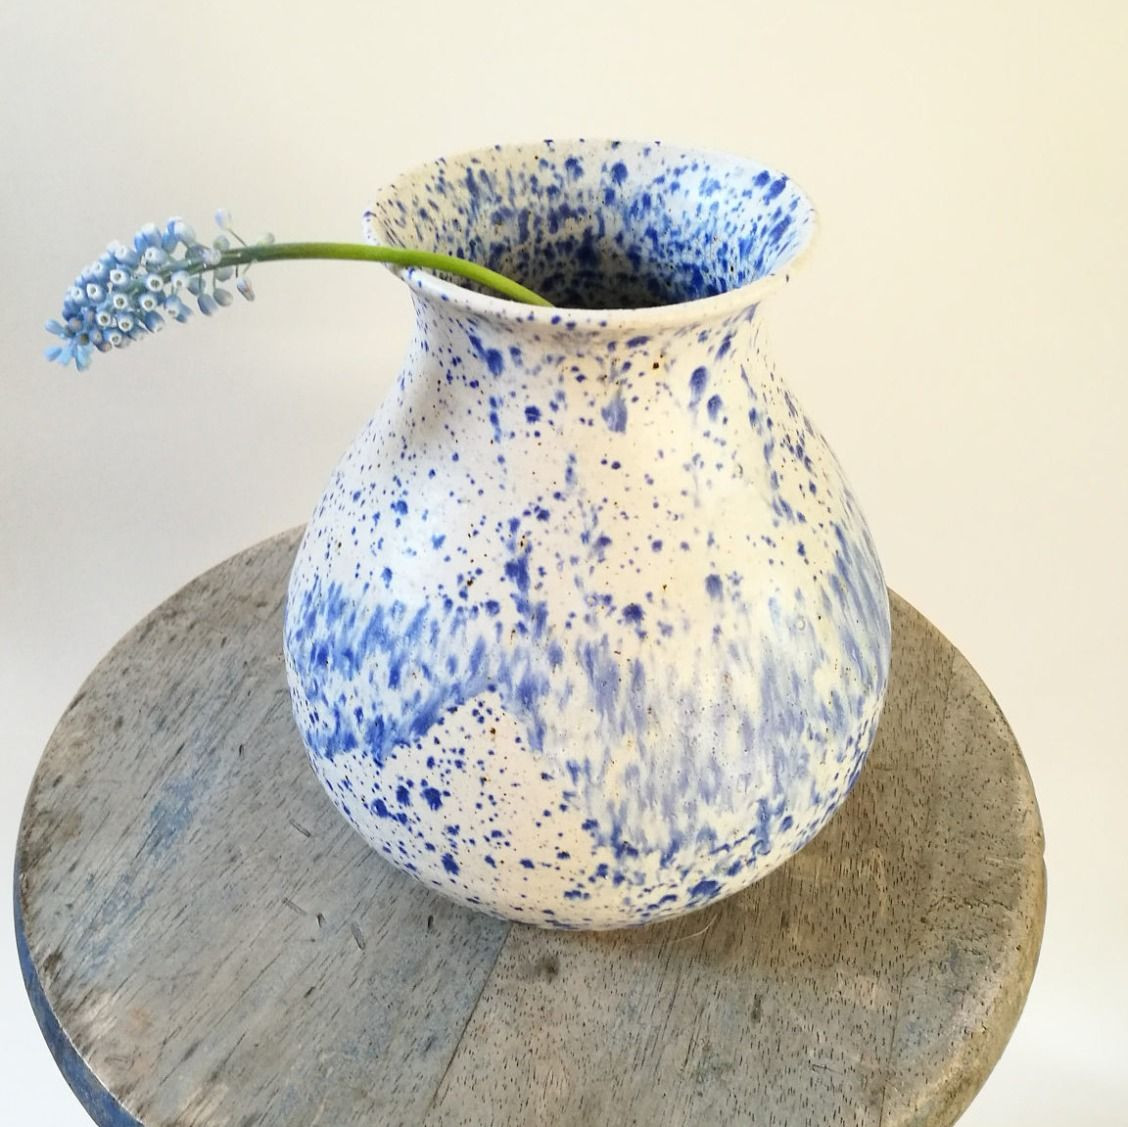 cheap ceramic vases of vintage vase blue speckled german pottery vase midcentury intended for vintage vase blue speckled german pottery vase midcentury ceramic flower expressionism indigo